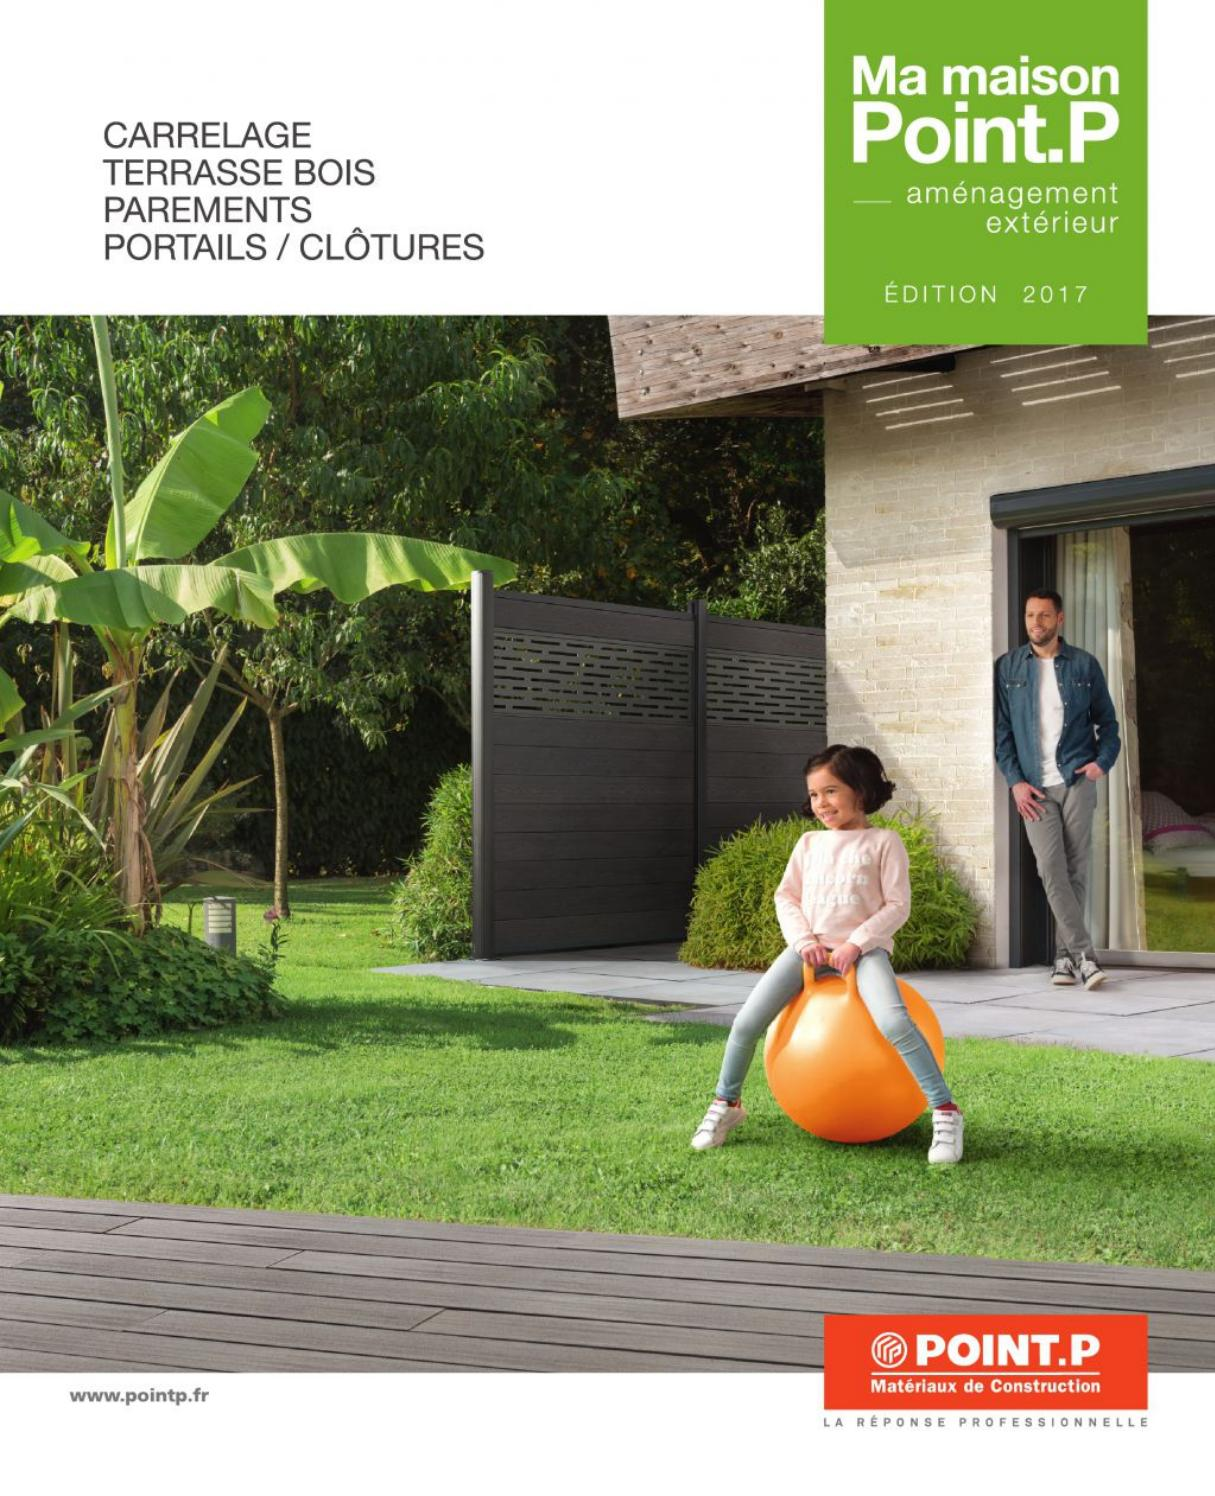 amenagement exterieur edition 2017